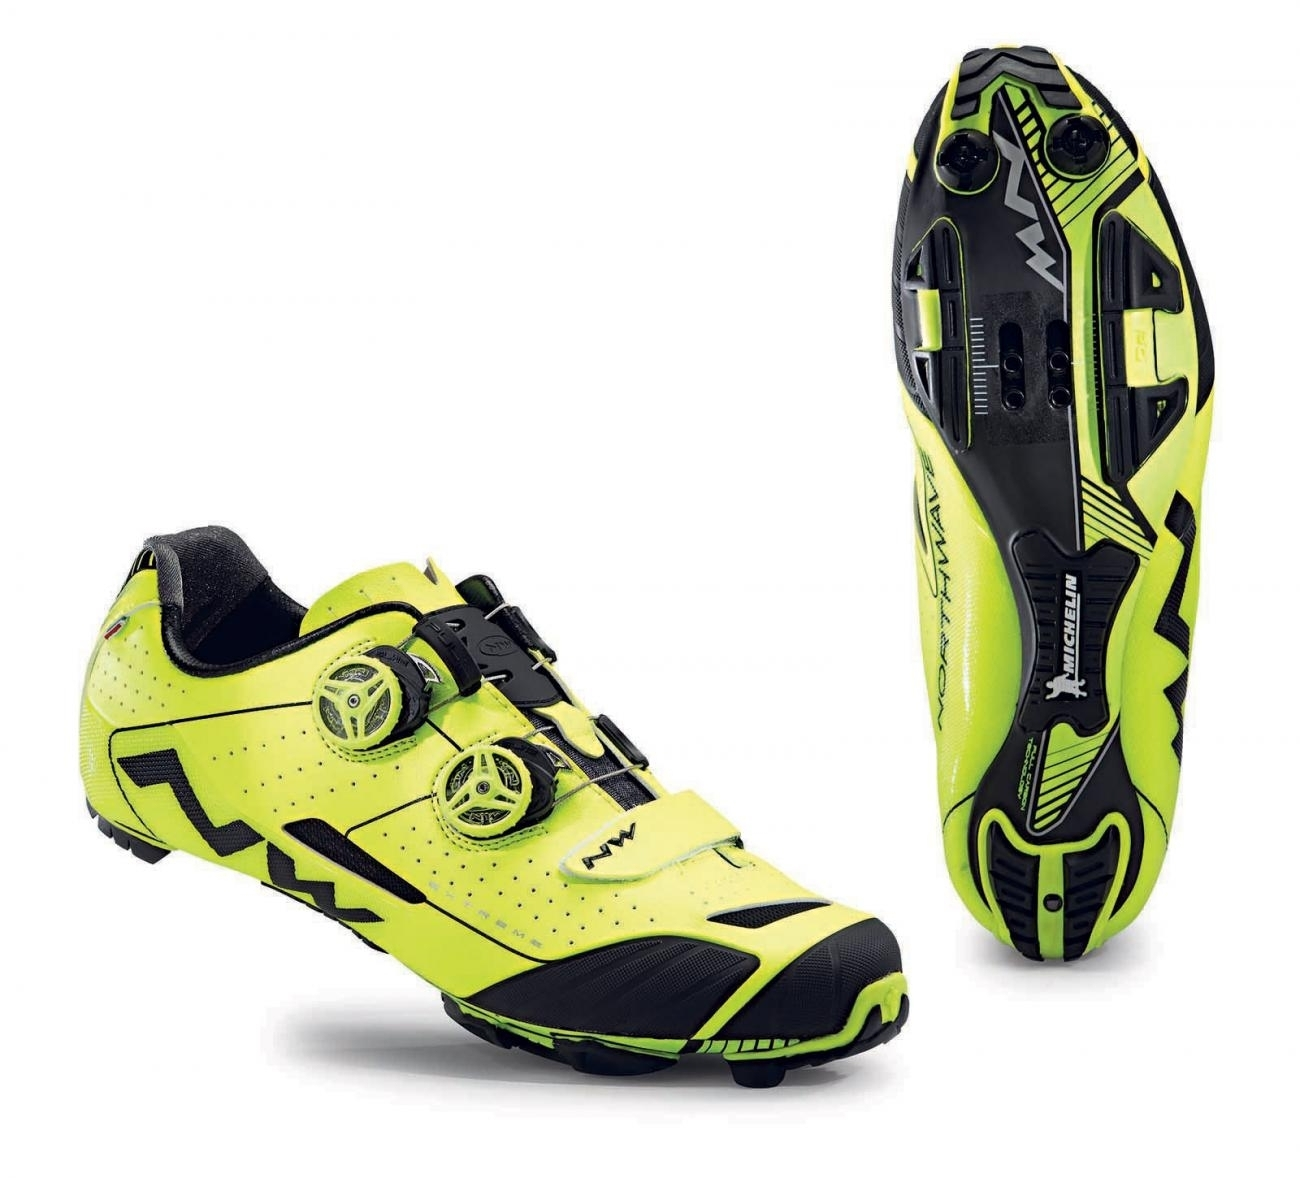 NORTHWAVE Man MTB XC shoes EXTREME XC fluo yellow